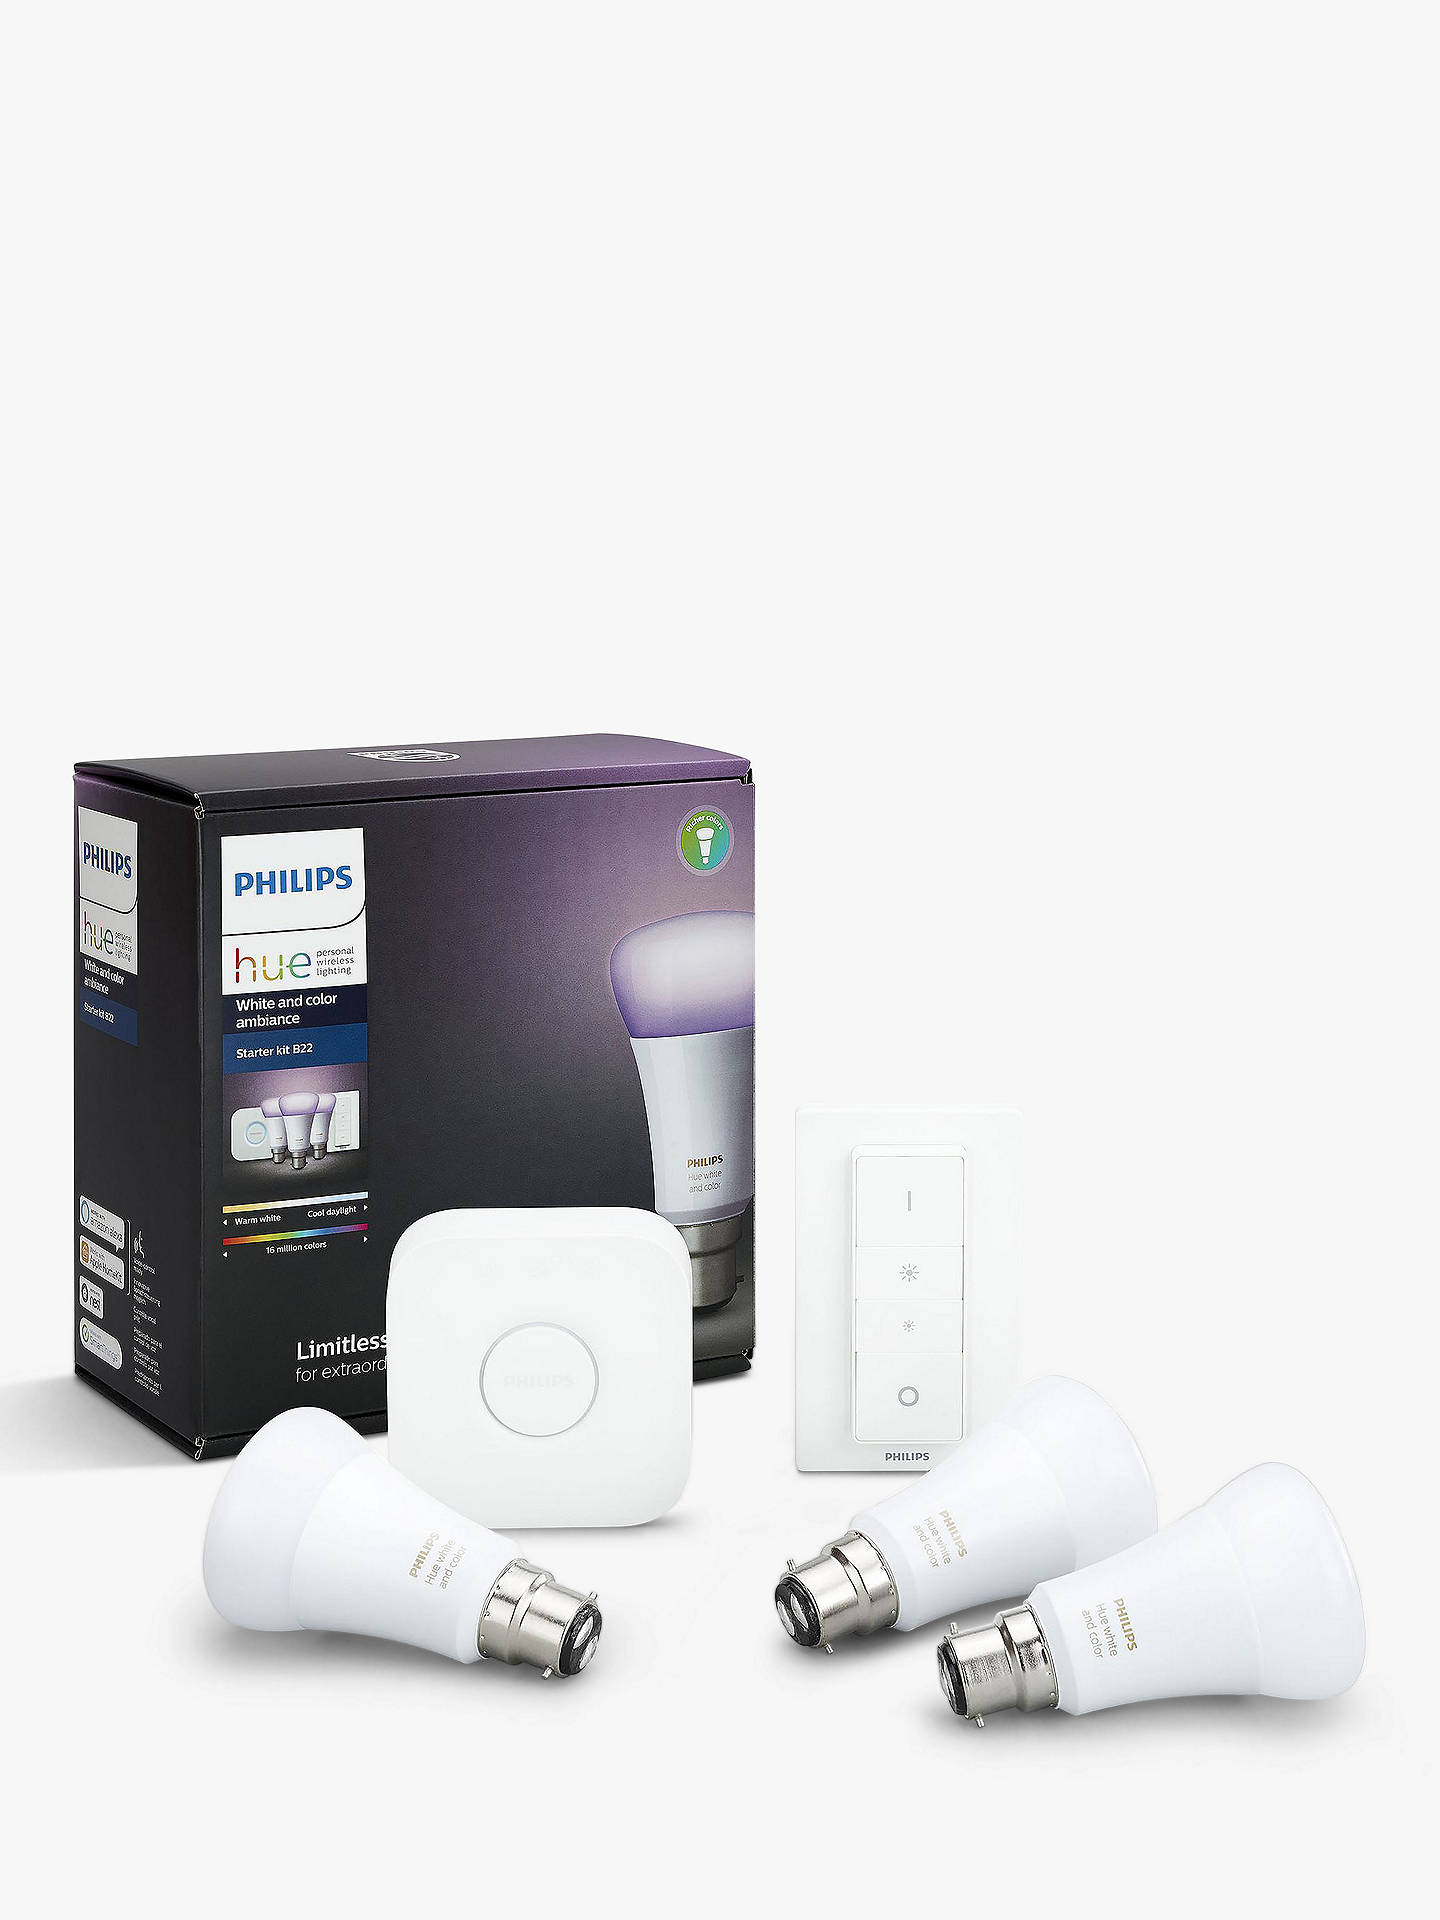 Philips Hue White and Colour Ambiance Wireless Lighting LED Starter Kit  with 3 Bulbs, 10W B22 Bayonet Cap